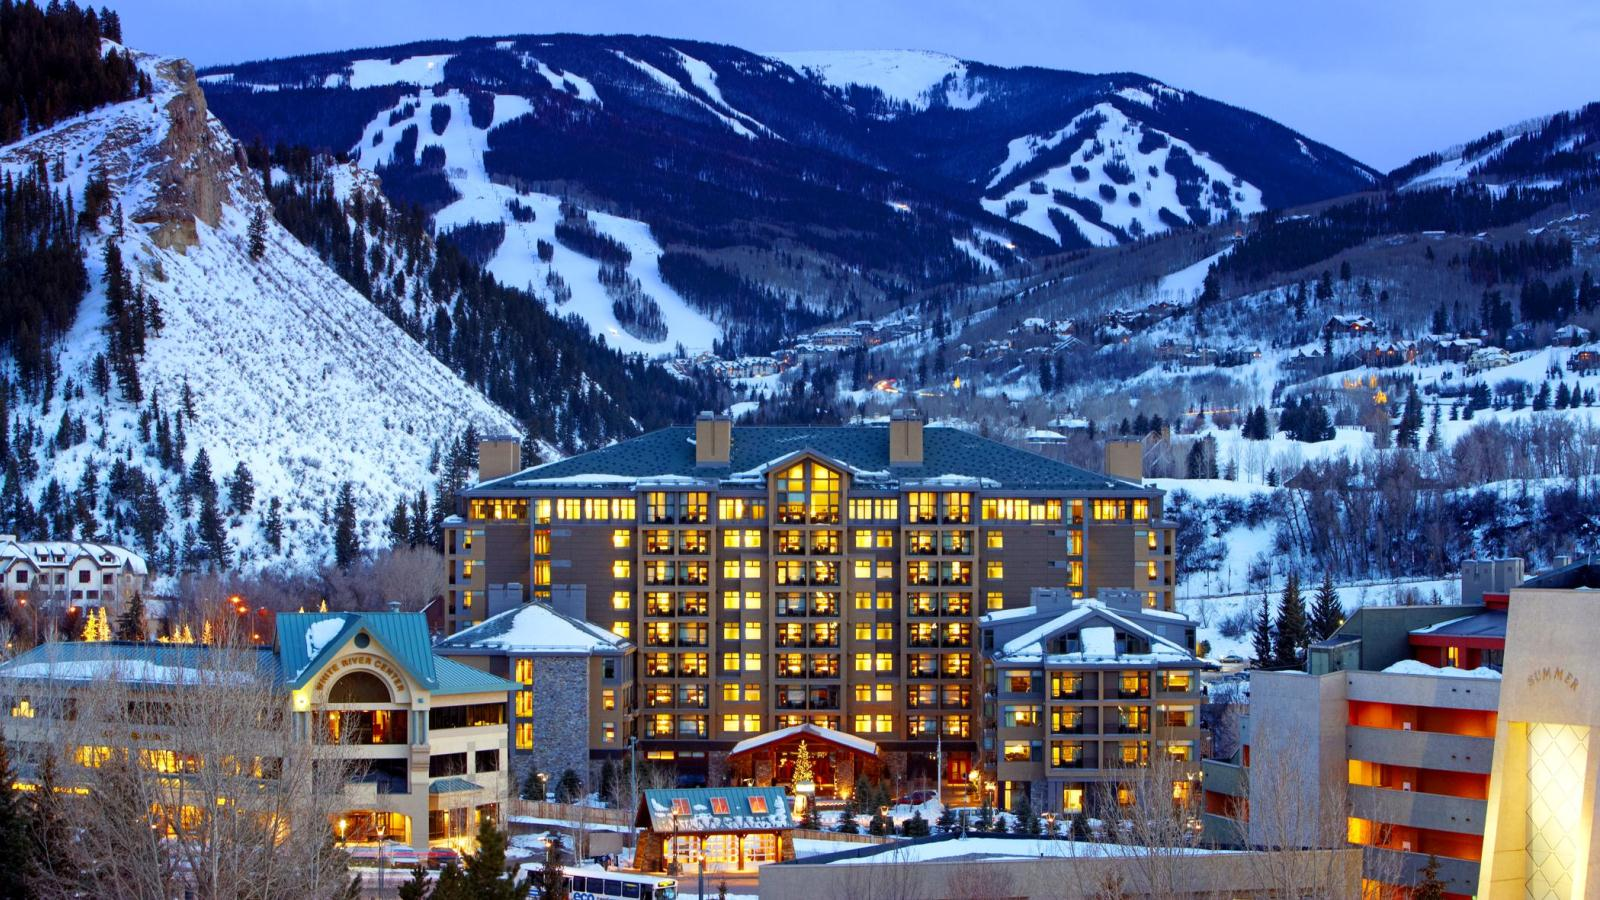 Westin Riverfront Resort at Beaver Creek Mountain